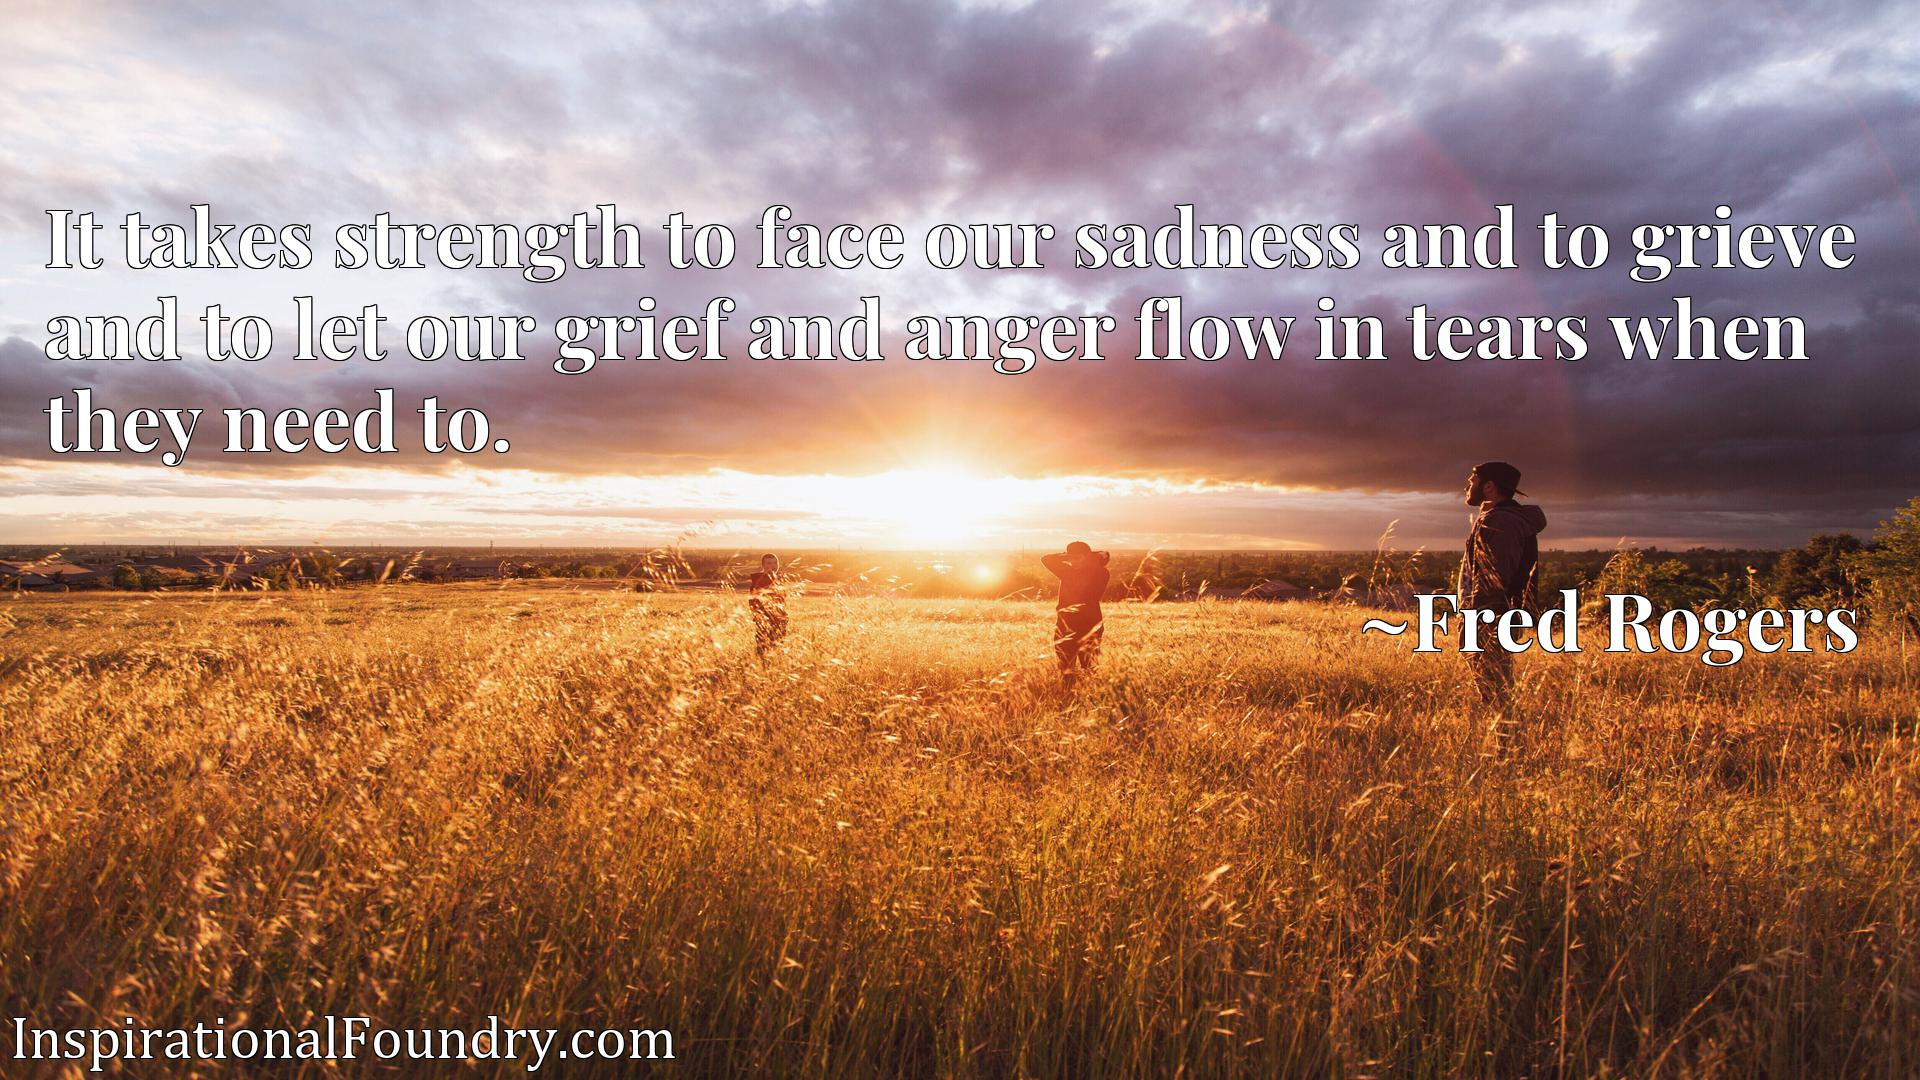 It takes strength to face our sadness and to grieve and to let our grief and anger flow in tears when they need to.